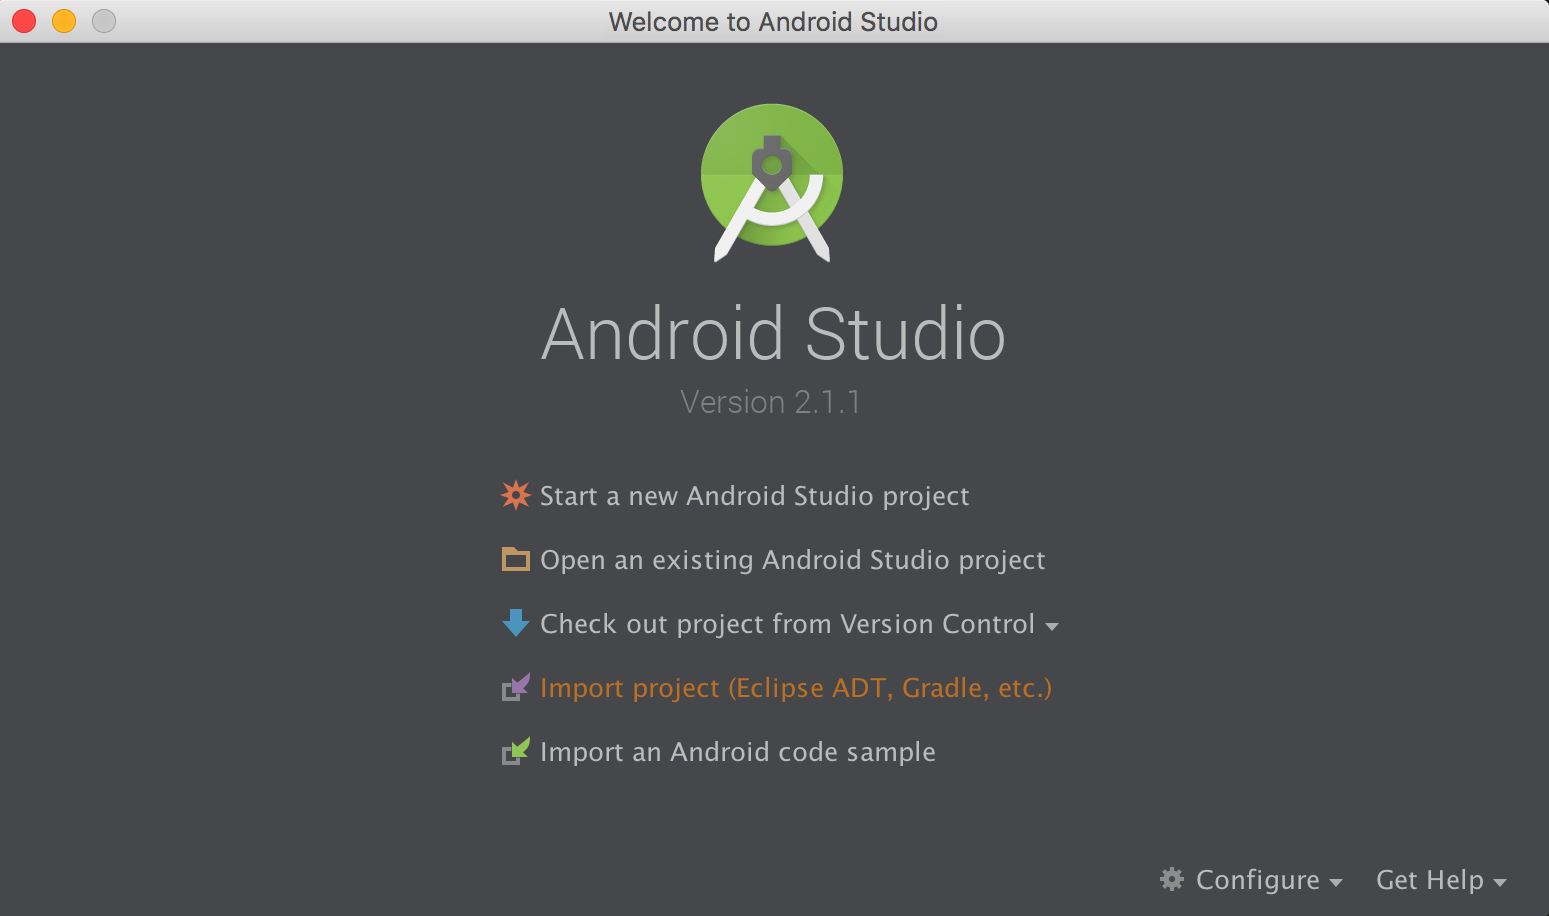 The welcome screen for Android Studio.